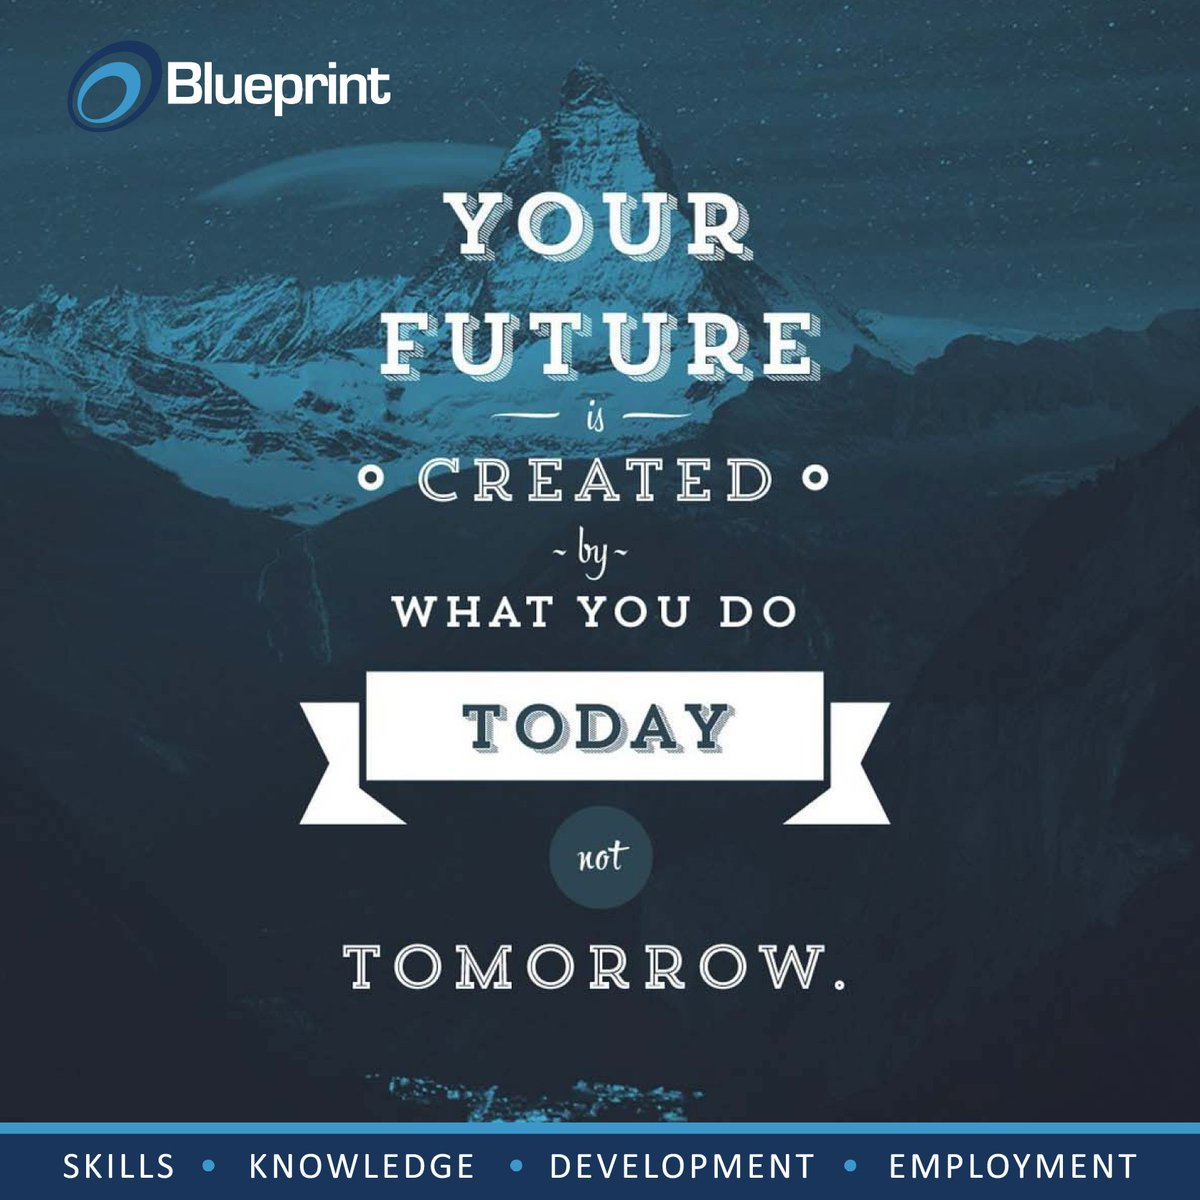 Blueprint training blueptraining twitter 0 replies 3 retweets 3 likes malvernweather Images